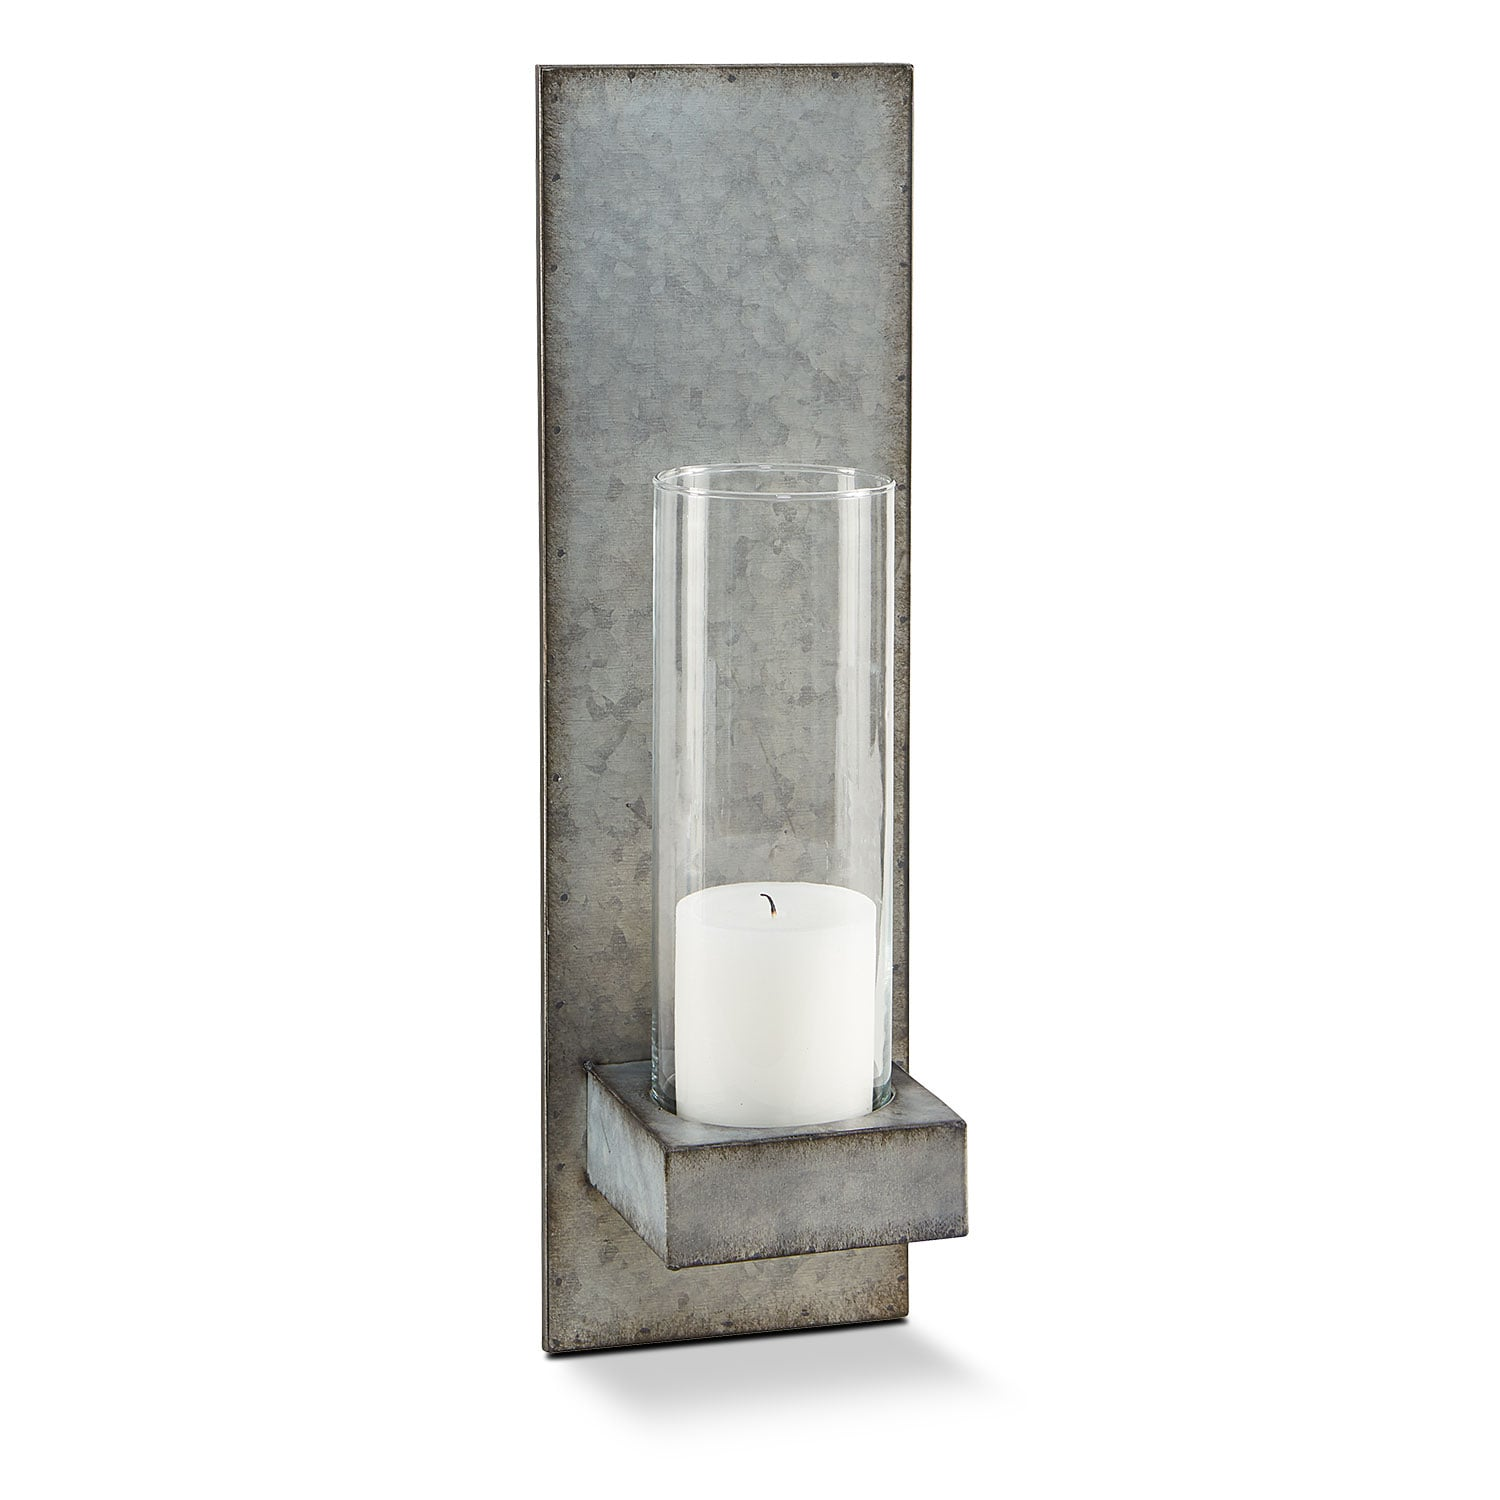 Home Accessories - Metal Wall Sconce